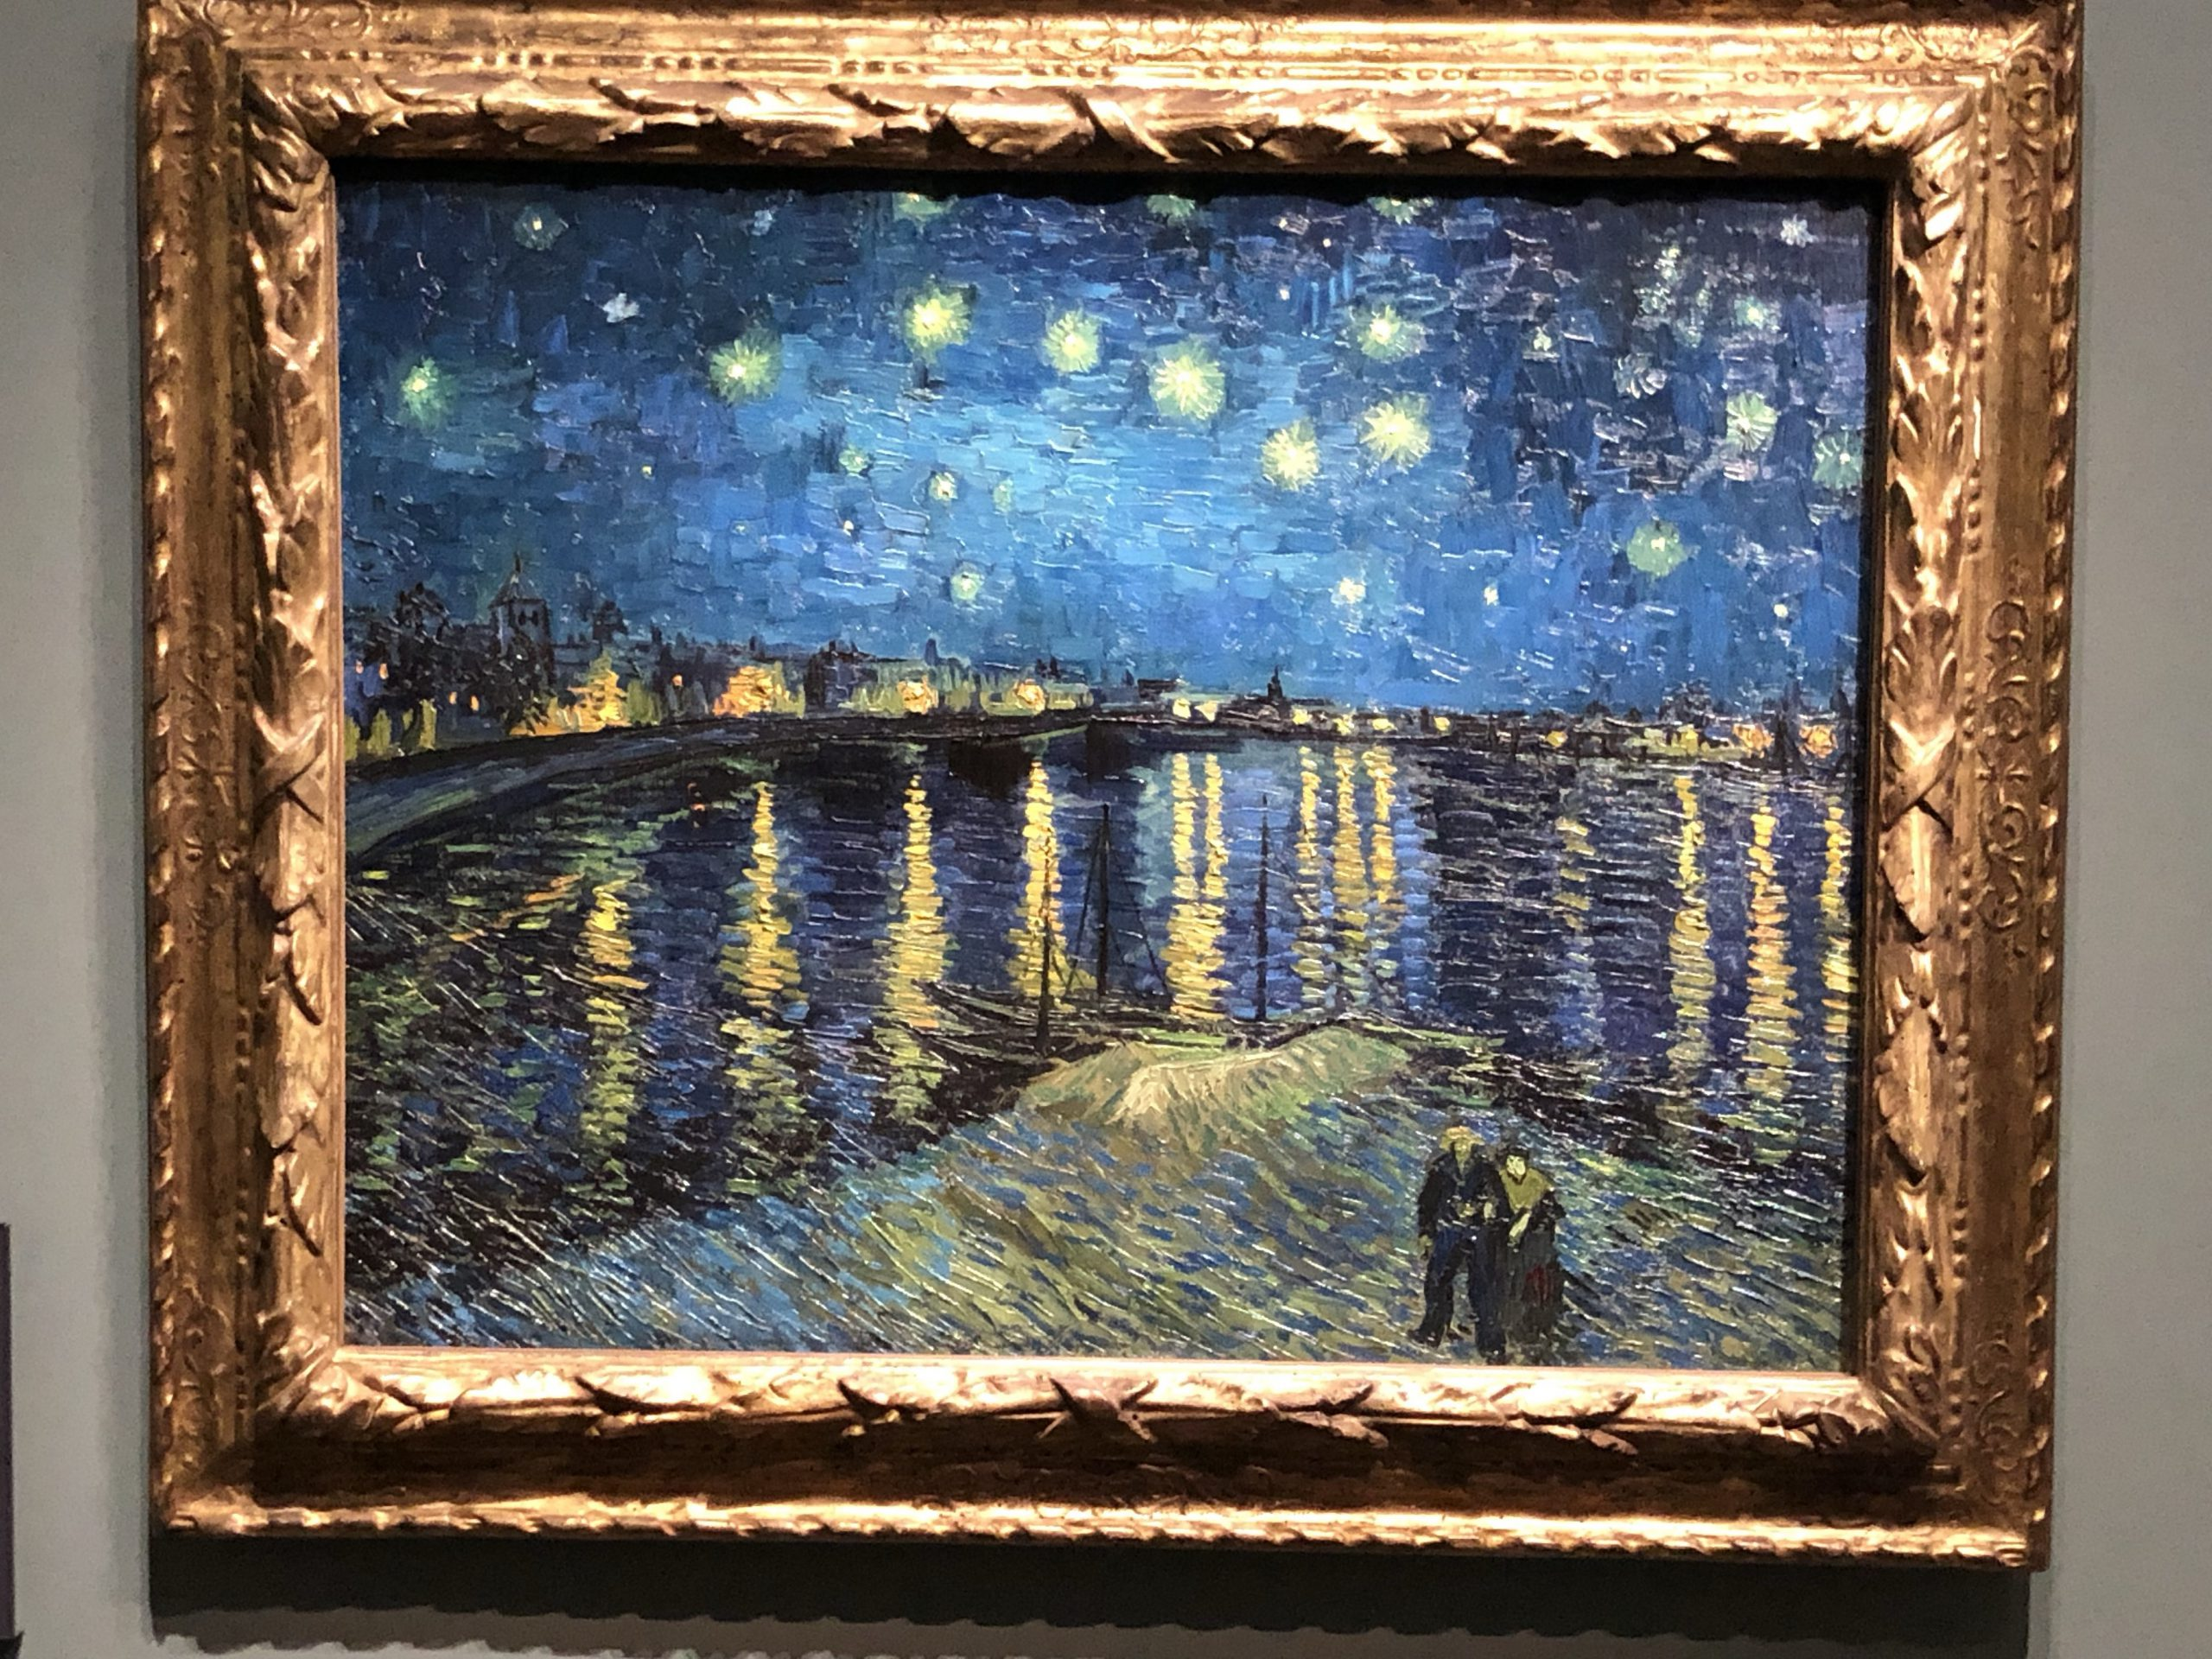 Top 10 Things to See in Musée d'Orsay